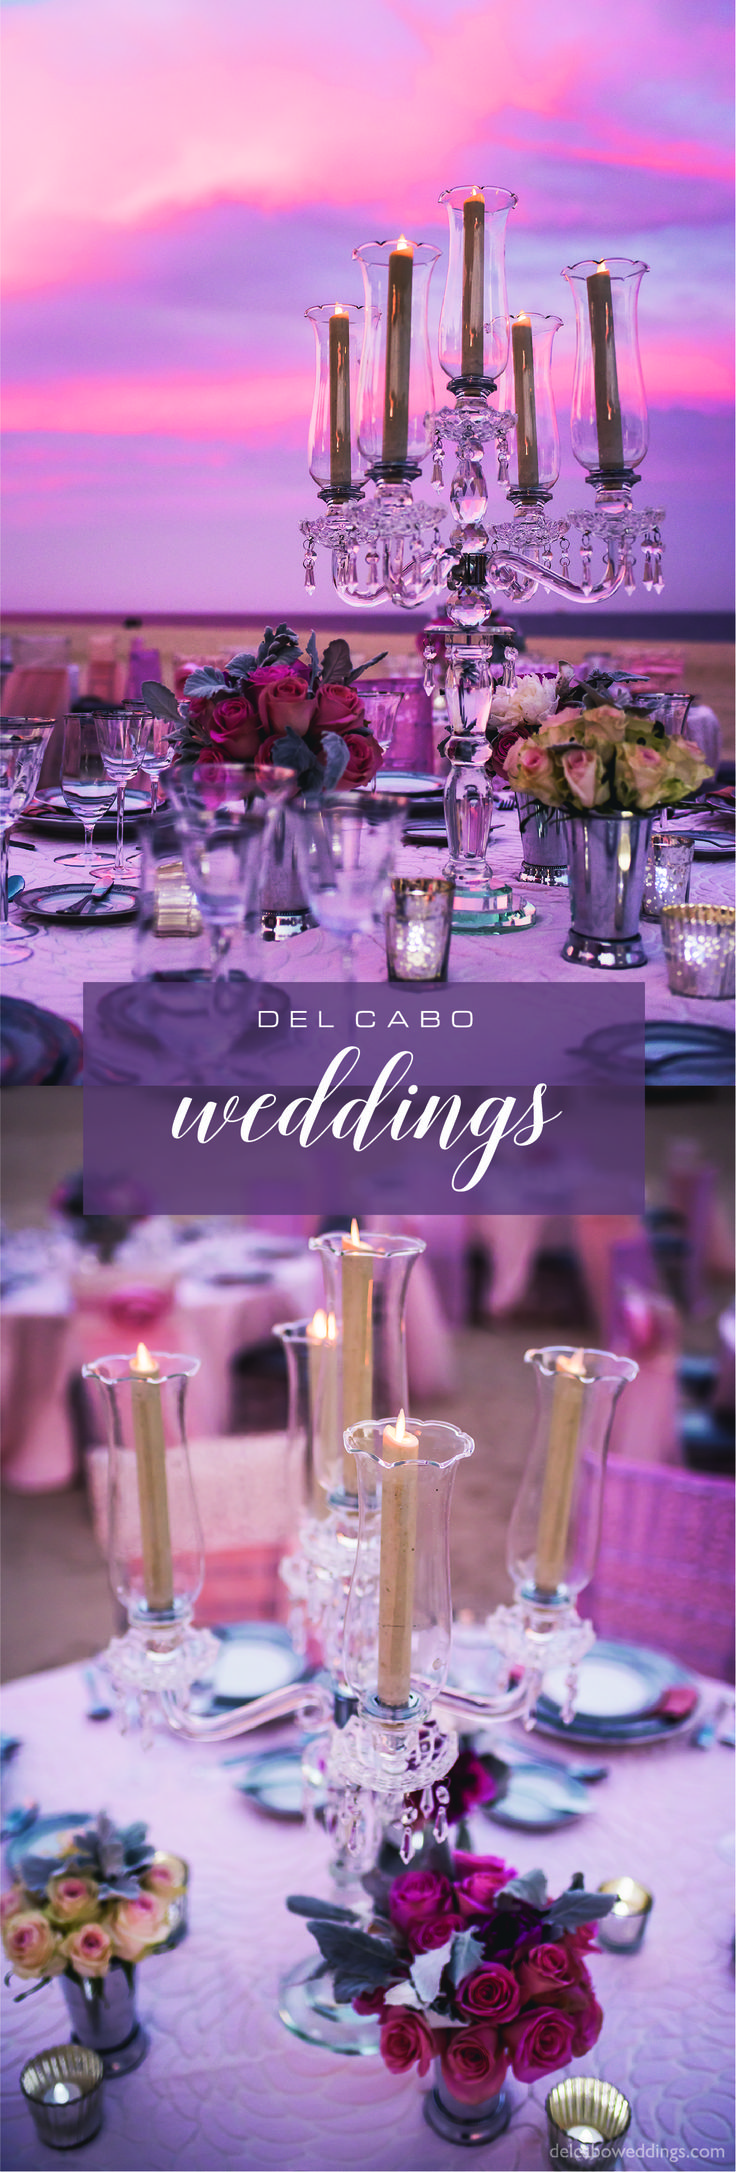 Stunning décor ideas for your reception! Feel like a real princess with Del Cabo Weddings!